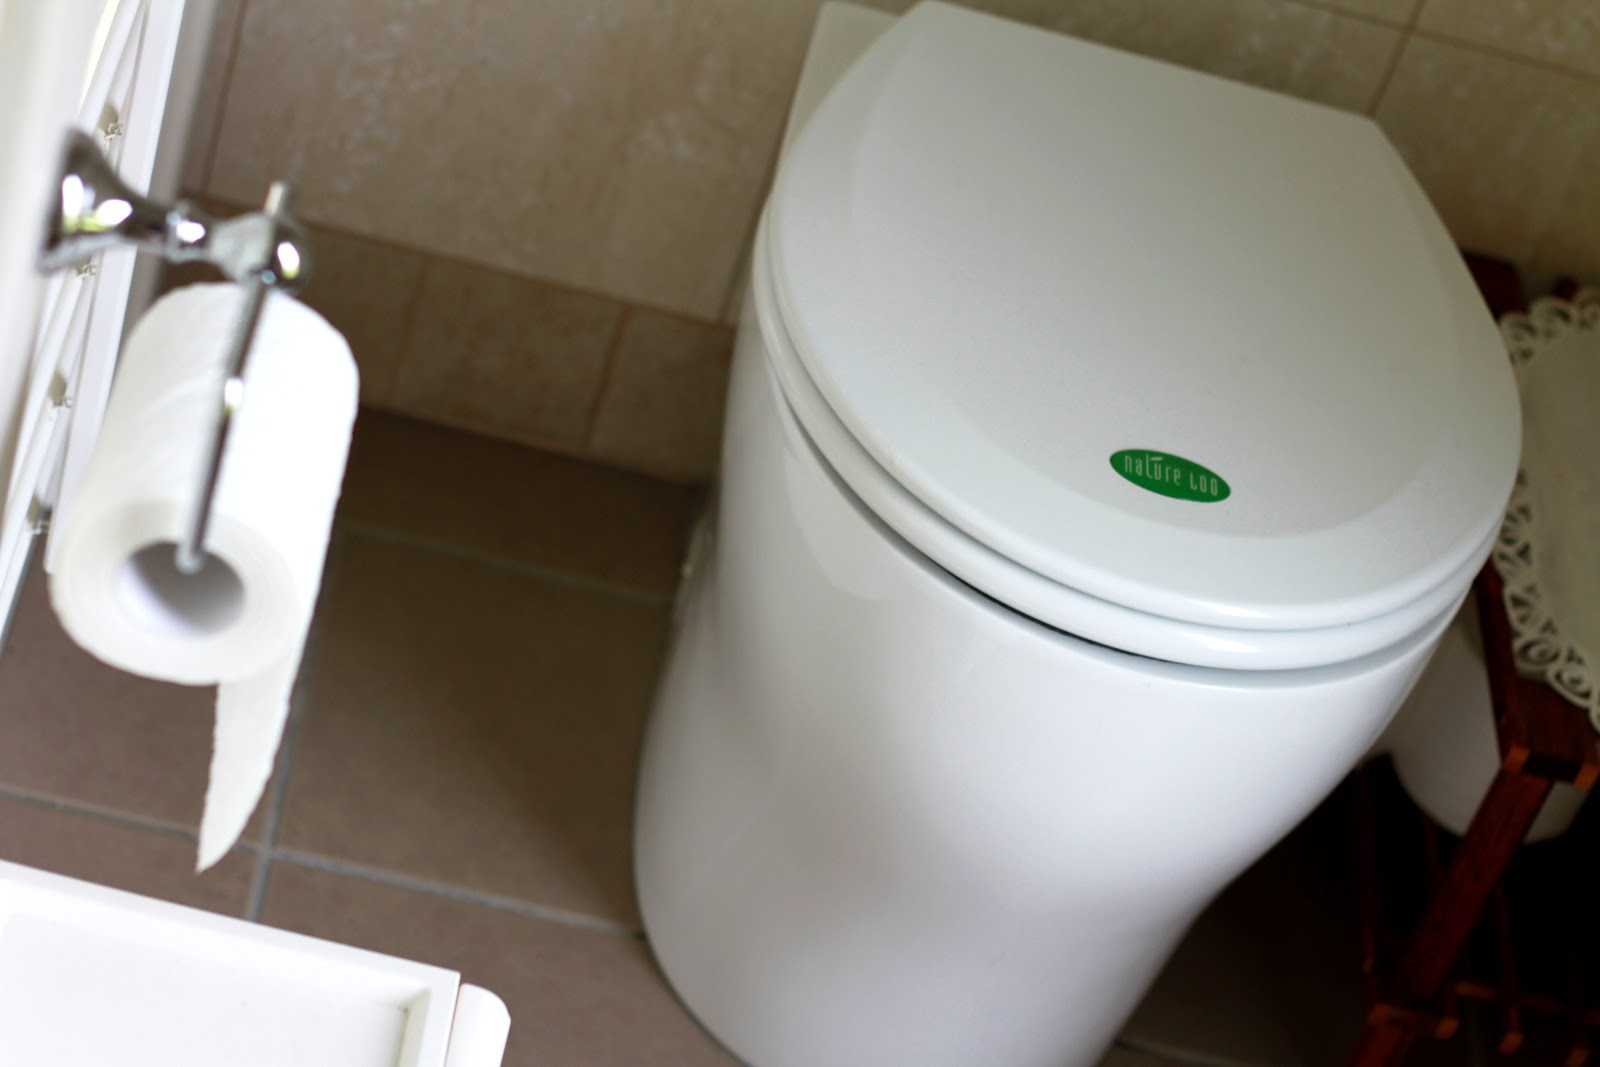 https://upload.wikimedia.org/wikipedia/commons/0/07/Nature_Loo_Waterless_Composting_Toilet_Pedestal.jpg